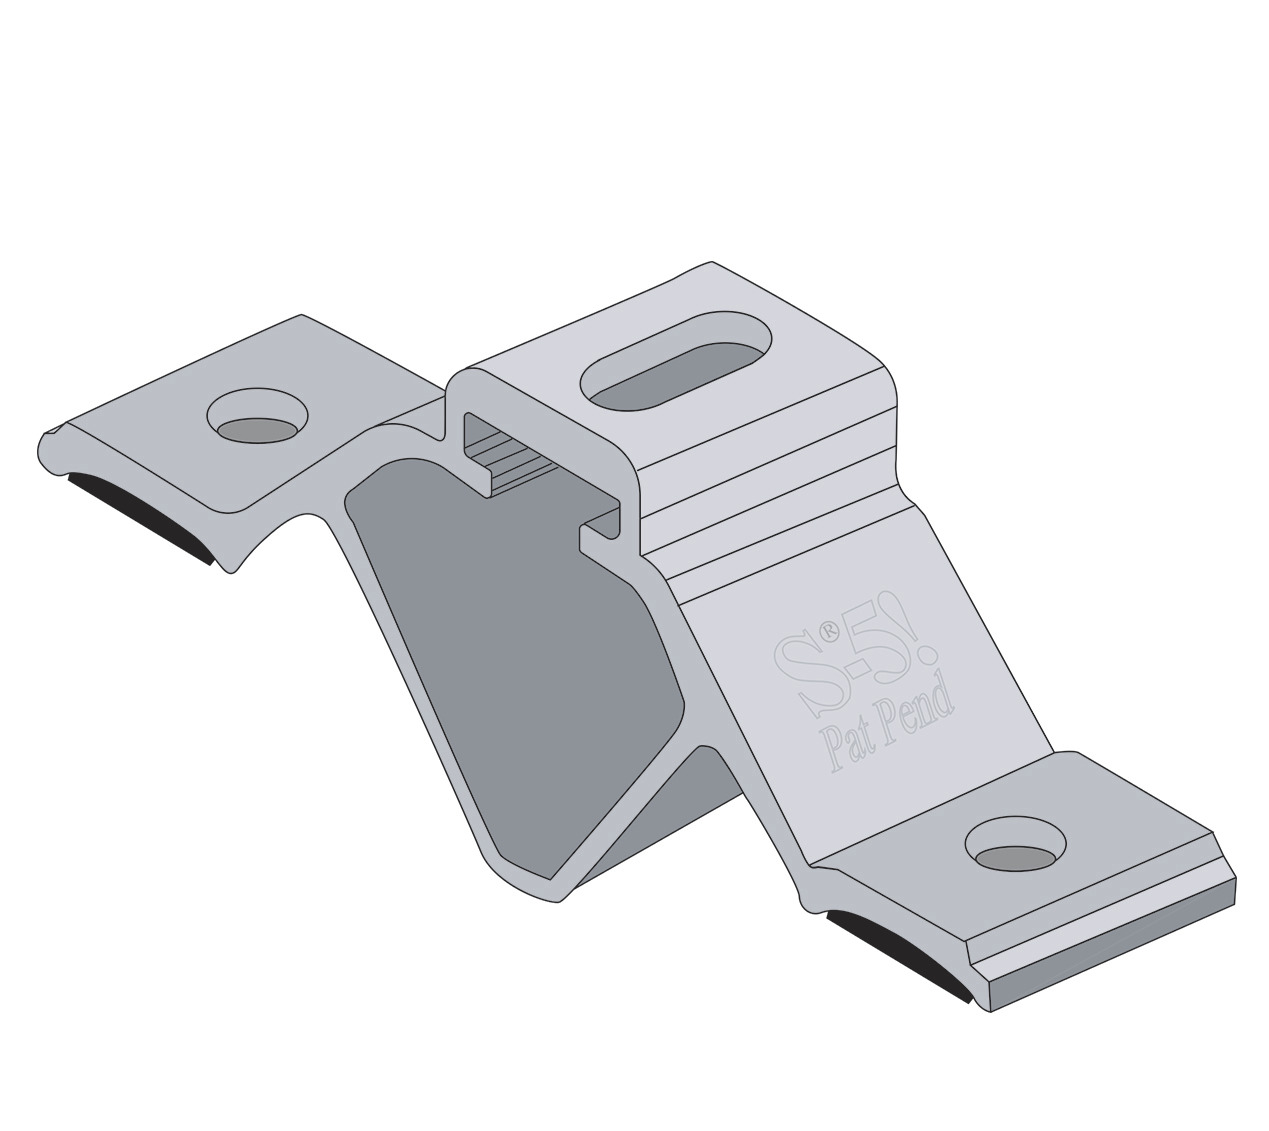 CorruBracket 100T from S-5! is designed specifically for corrugated roofing profiles that are common in North America.